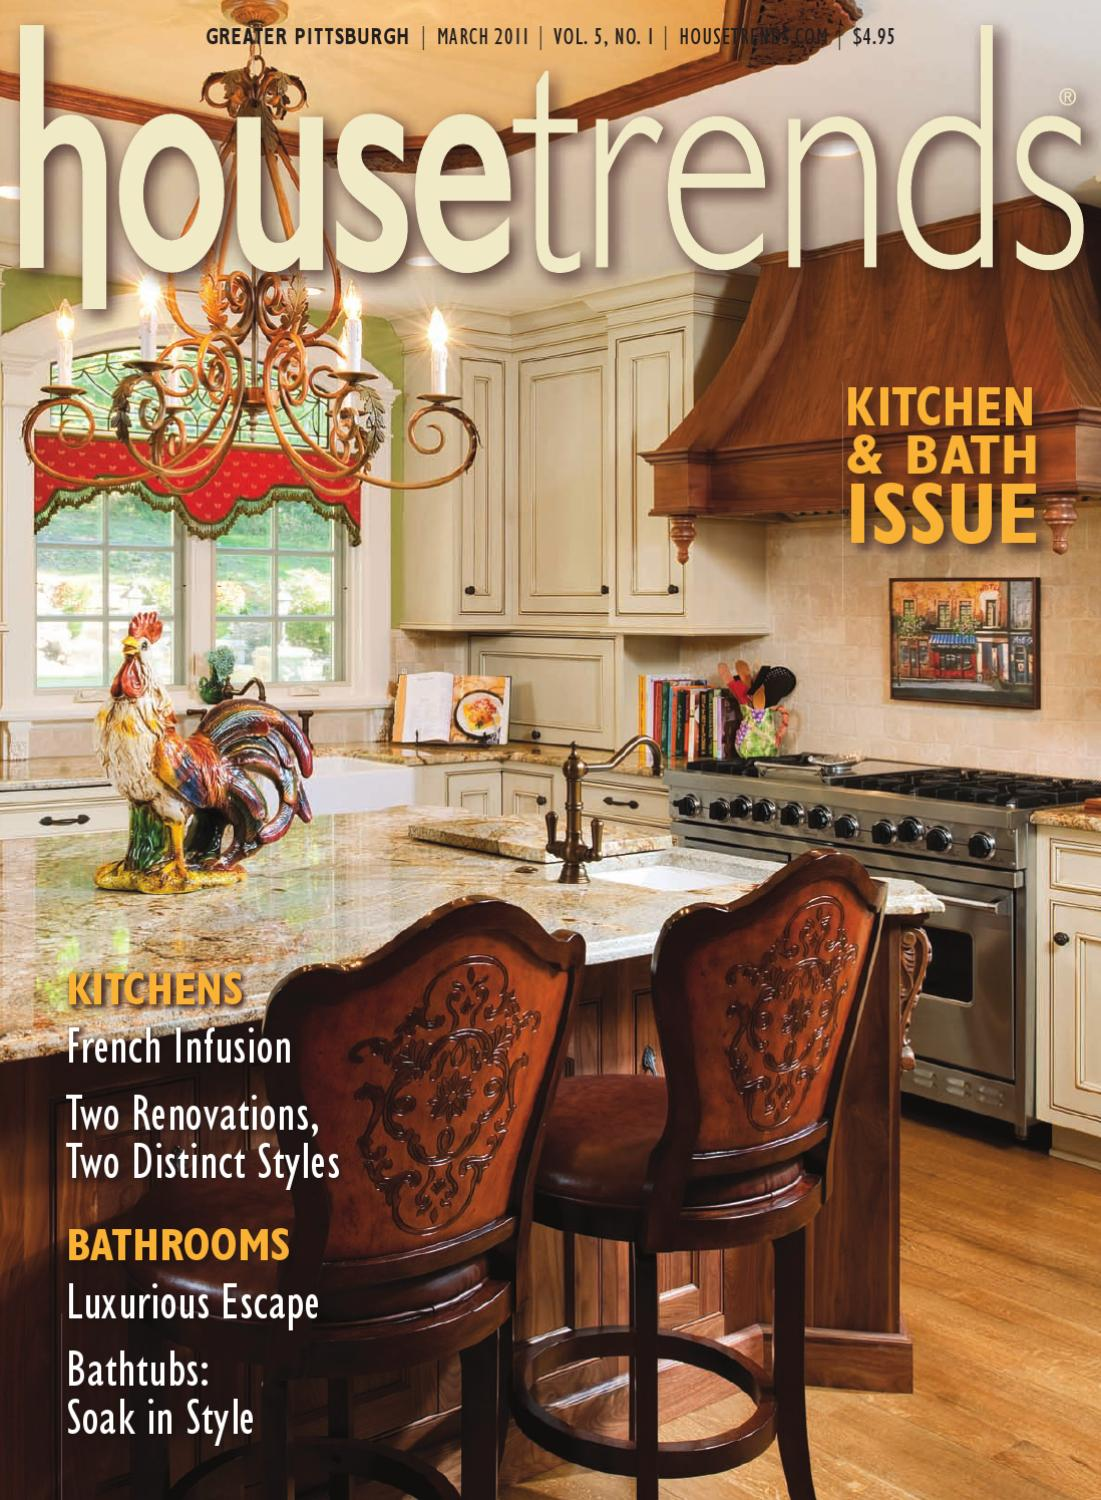 Pittsburgh Housetrends By Issuu